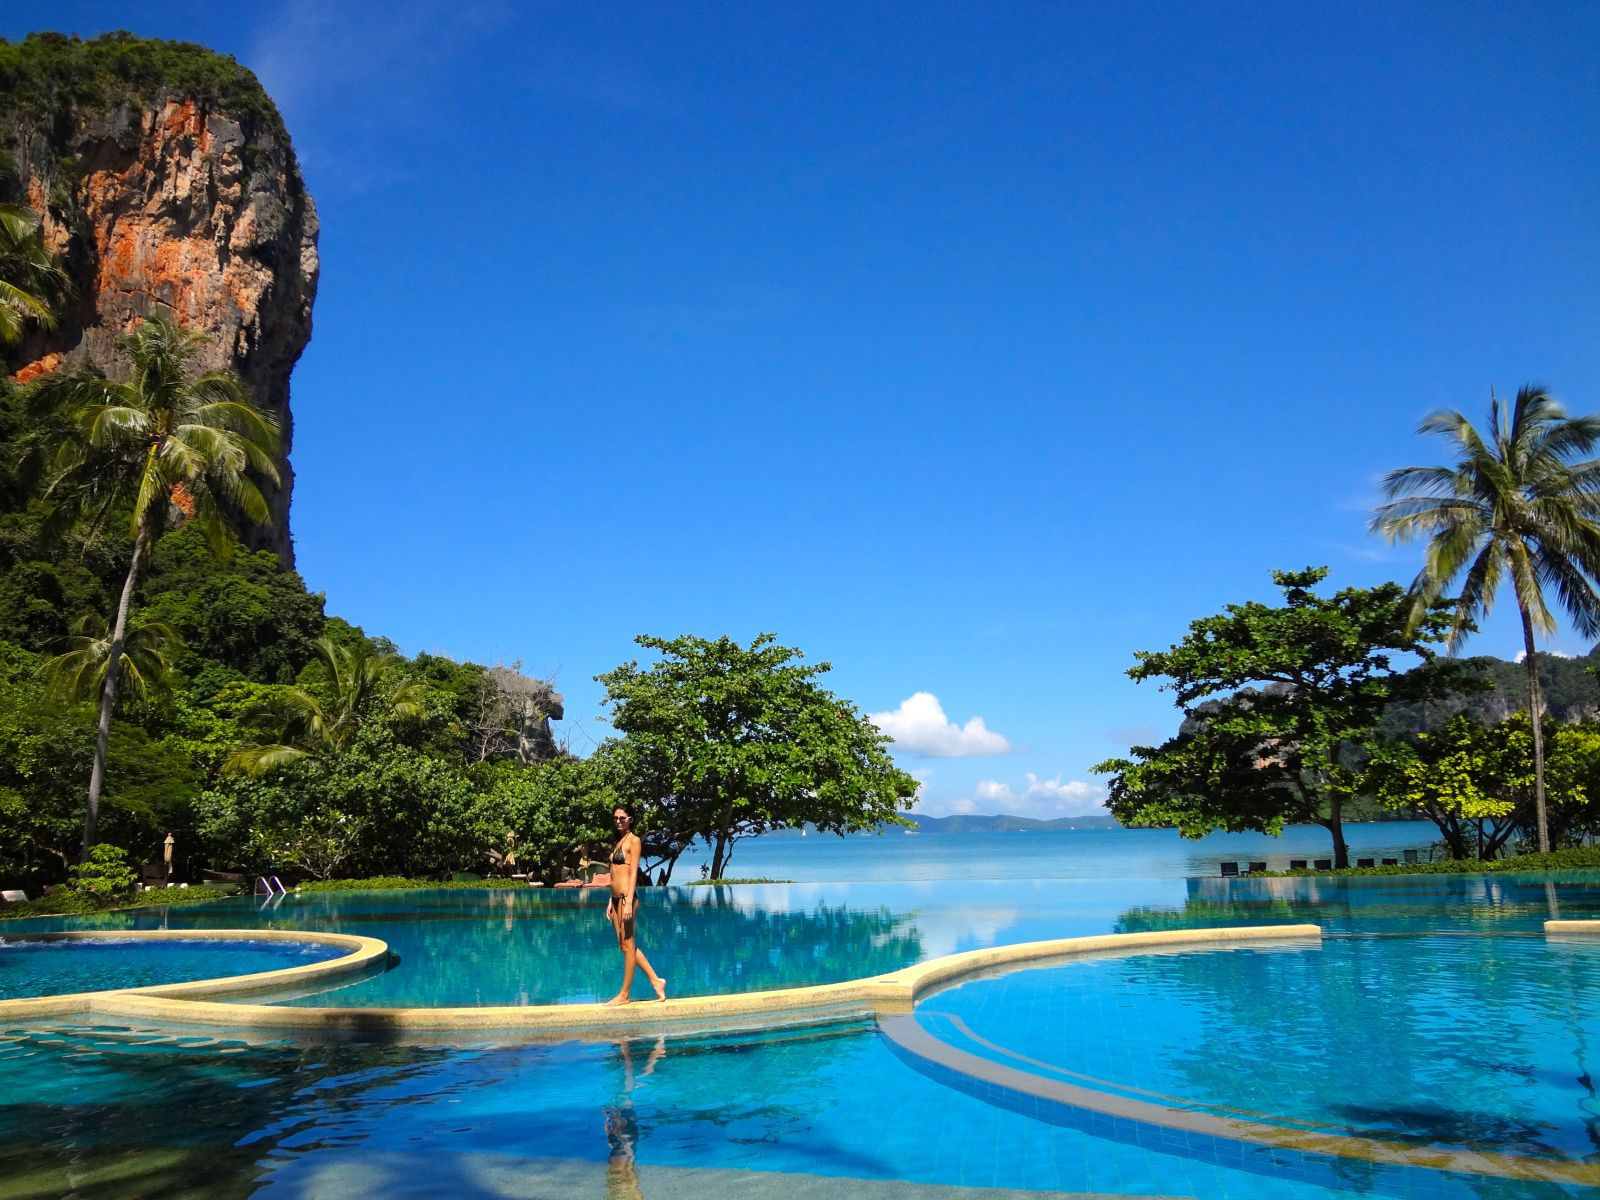 Top 5 Honeymoon Spots In Thailand Pictured Here Is Rayavadee Resort At Railay Beach Krabi Read More On The Blog From Tourism Authority Of